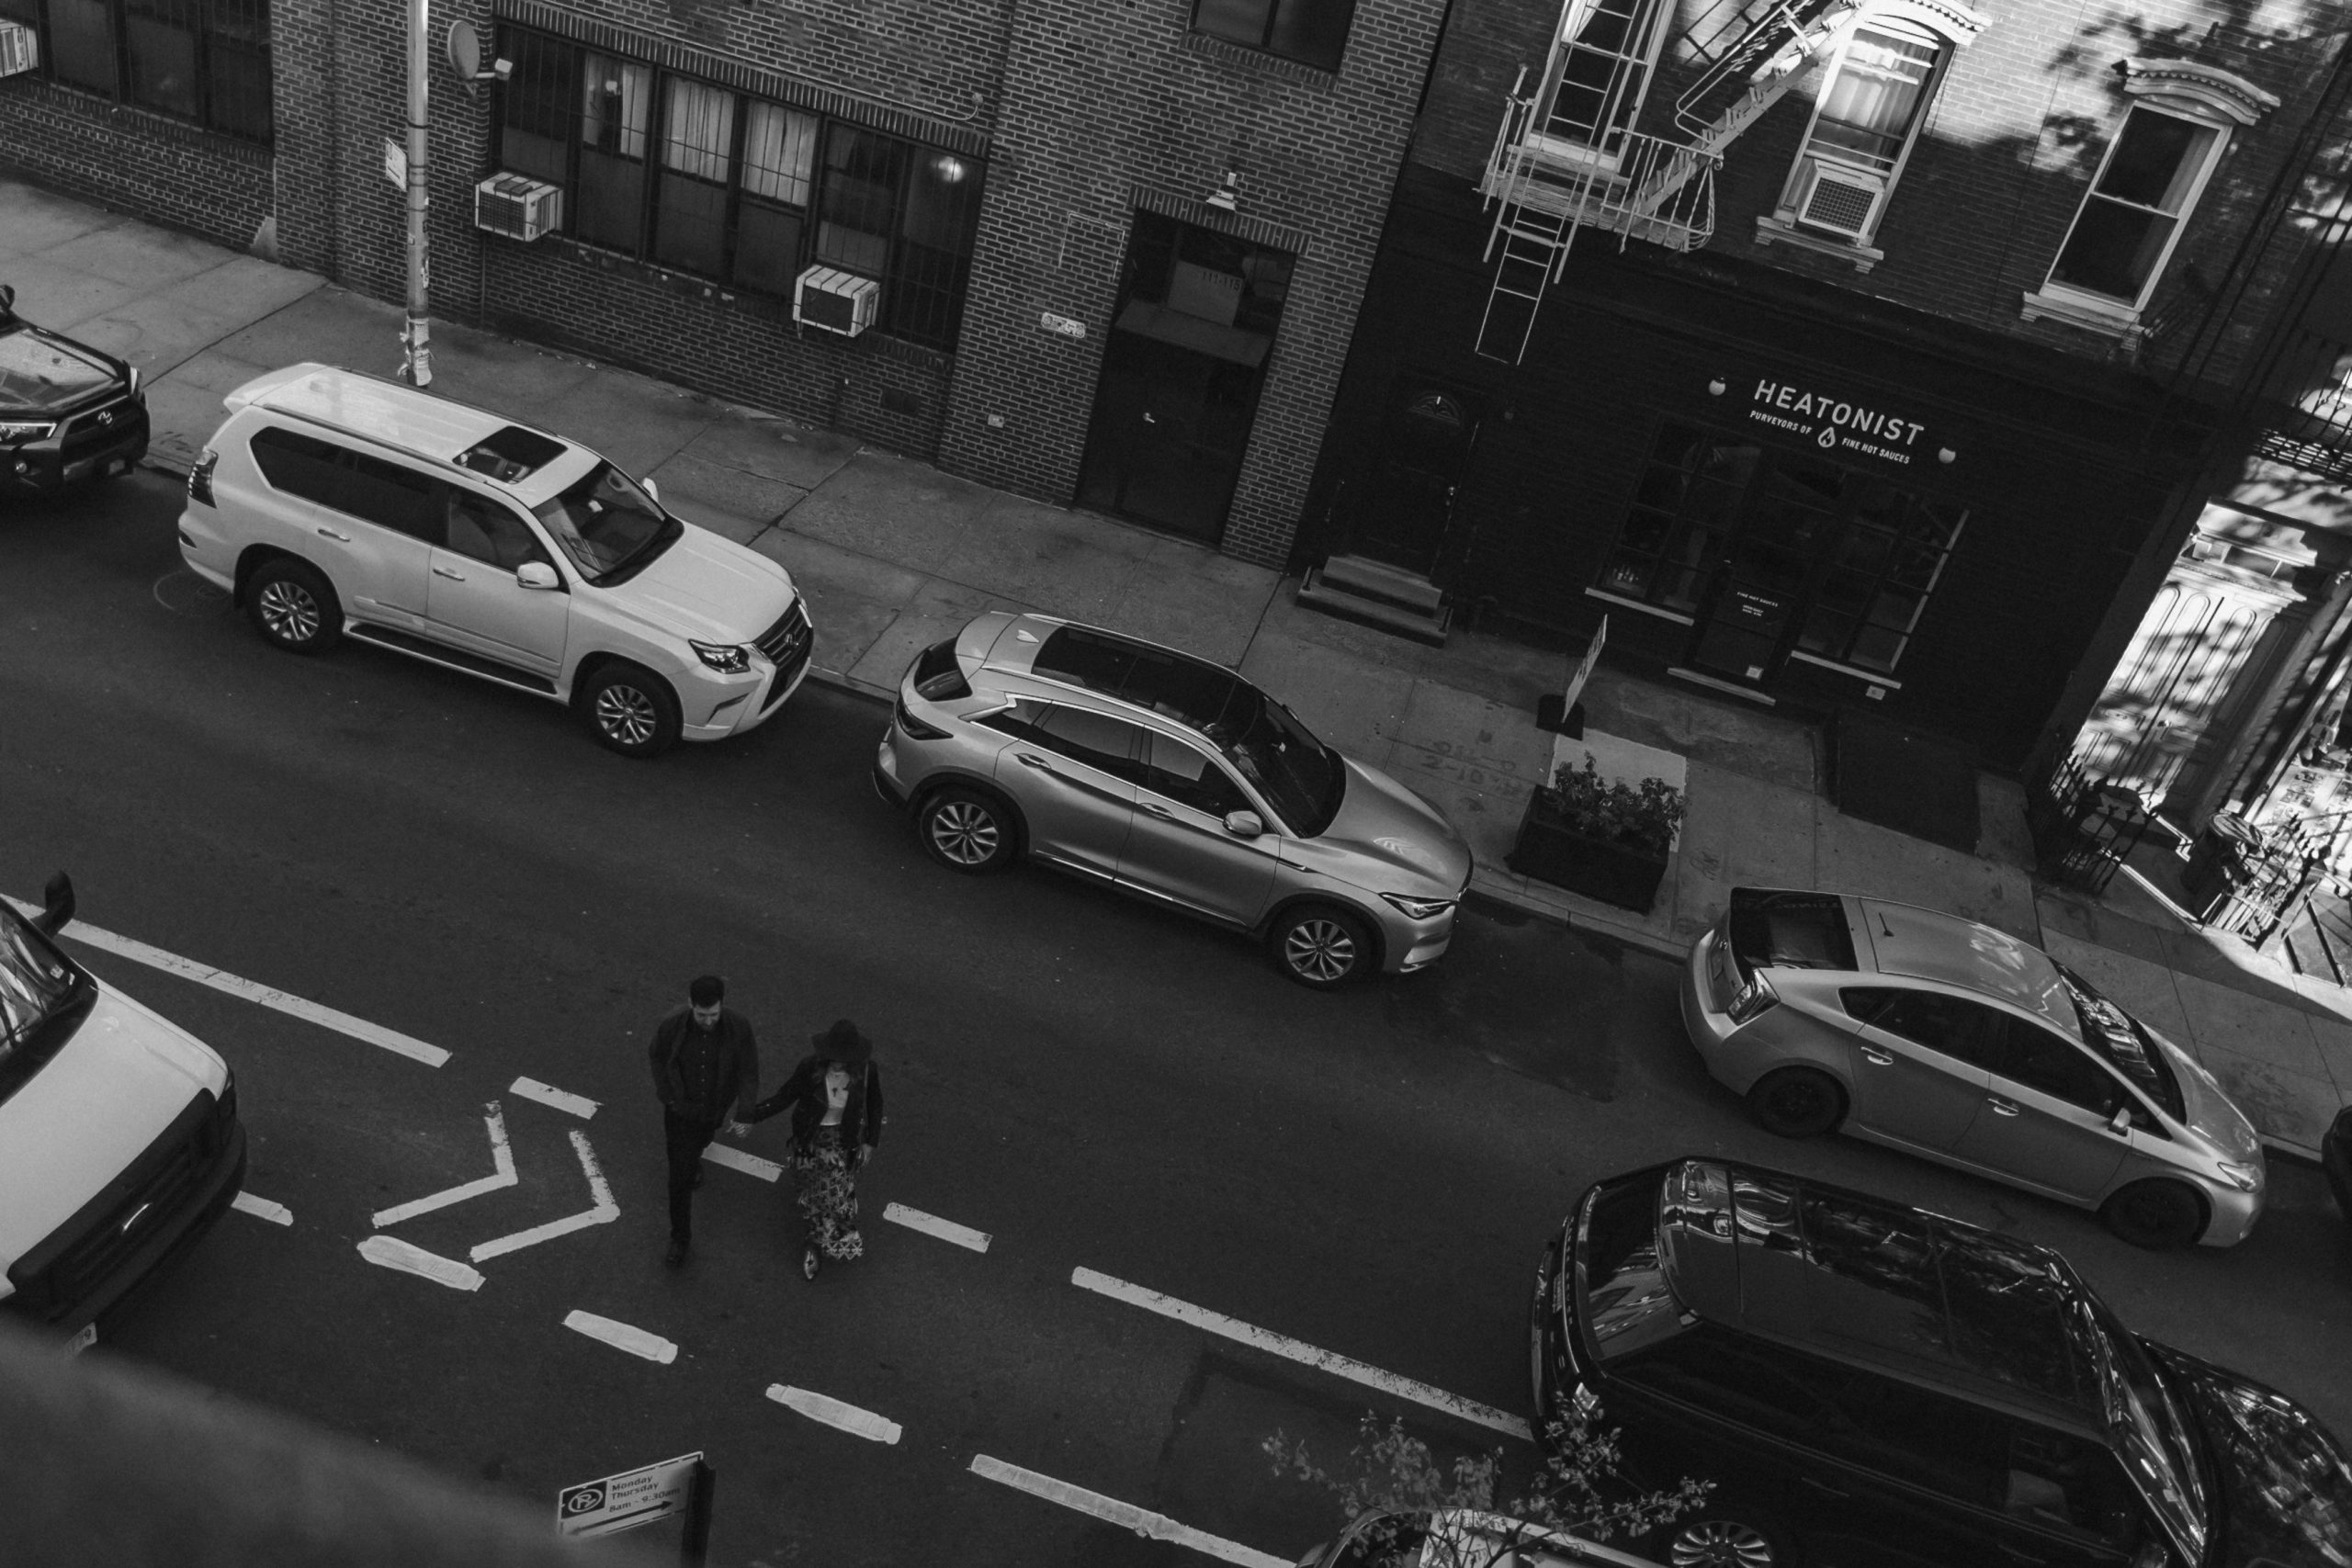 birds-eye-view-brooklyn-photo-engagement-crosswalk-photo-black-and-white-suessmoments-photographer-nyc